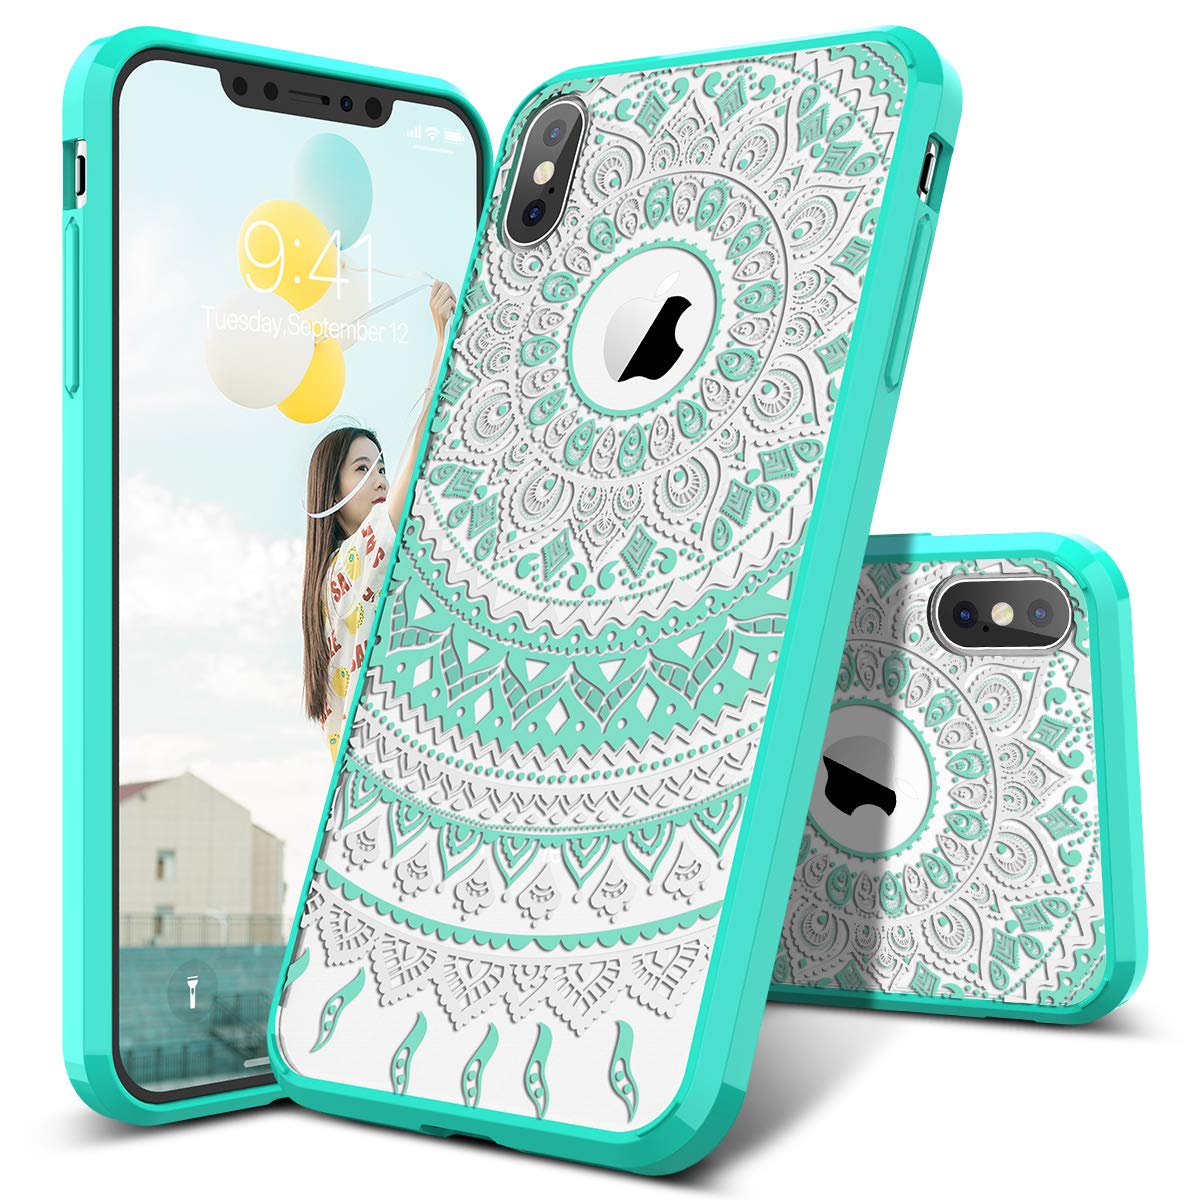 SmartLegend iPhone Xs Case, iPhone X Case, Girls Women Slim Anti-Slip Clear Hybrid Hard PC + TPU Bumper Mandala Floral Shockproof Full-Body Protective Phone Cover for iPhone X/Xs 5.8 Inch- Mint